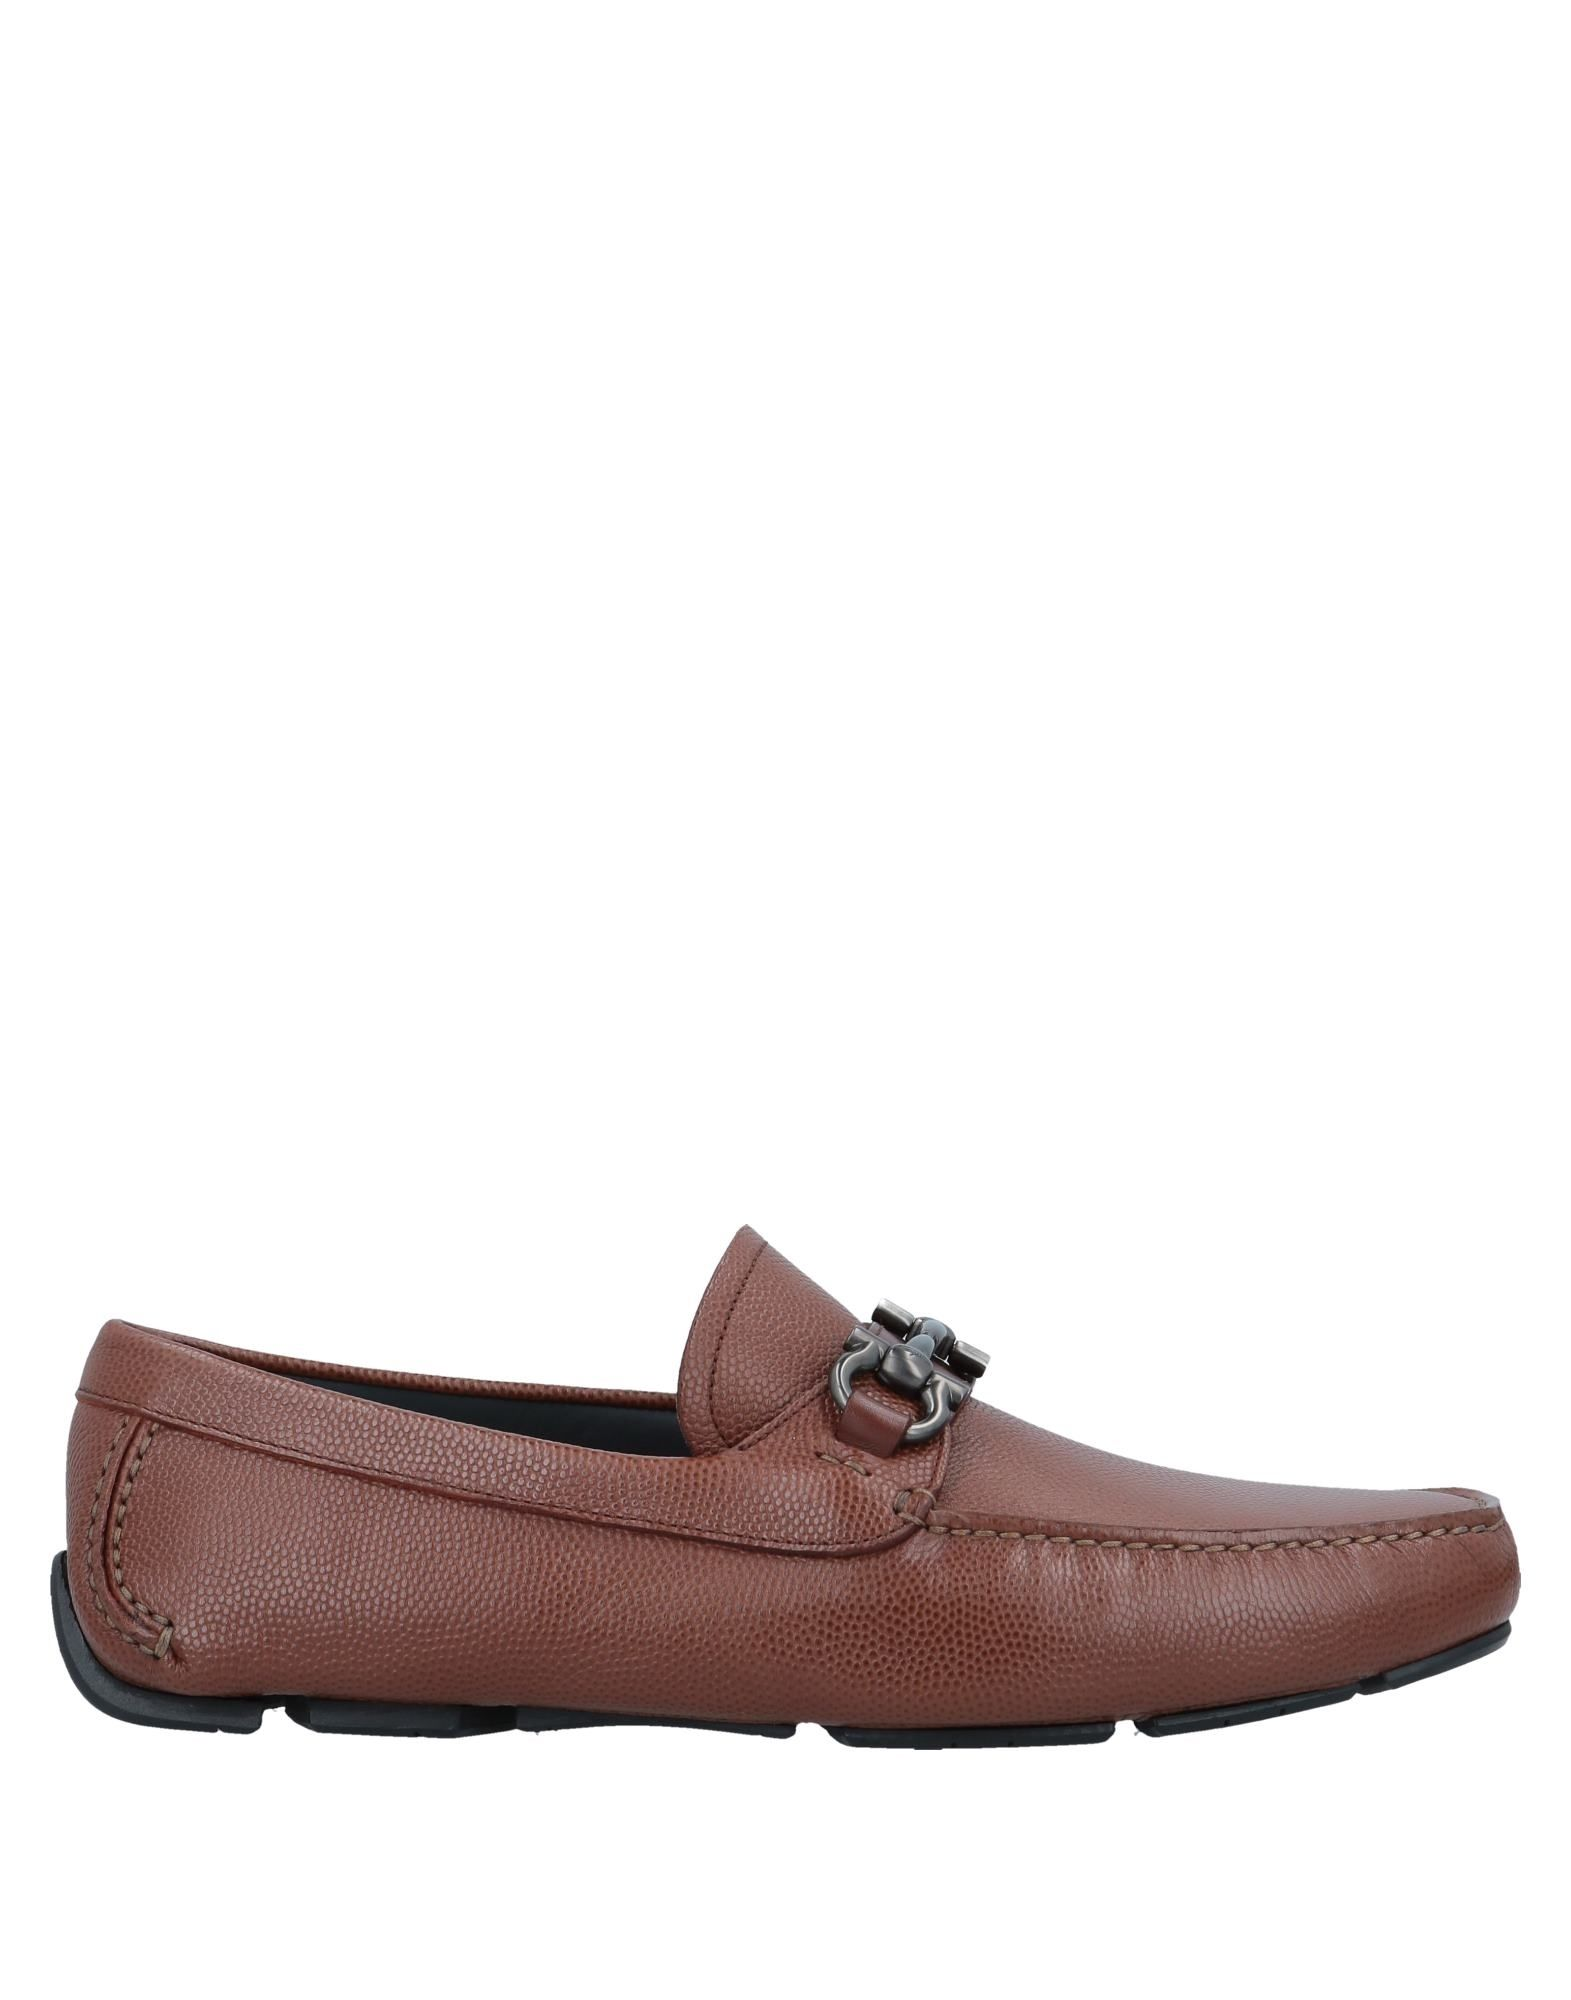 Salvatore on Ferragamo Loafers - Men Salvatore Ferragamo Loafers online on Salvatore  Australia - 11508337LG 3124a1